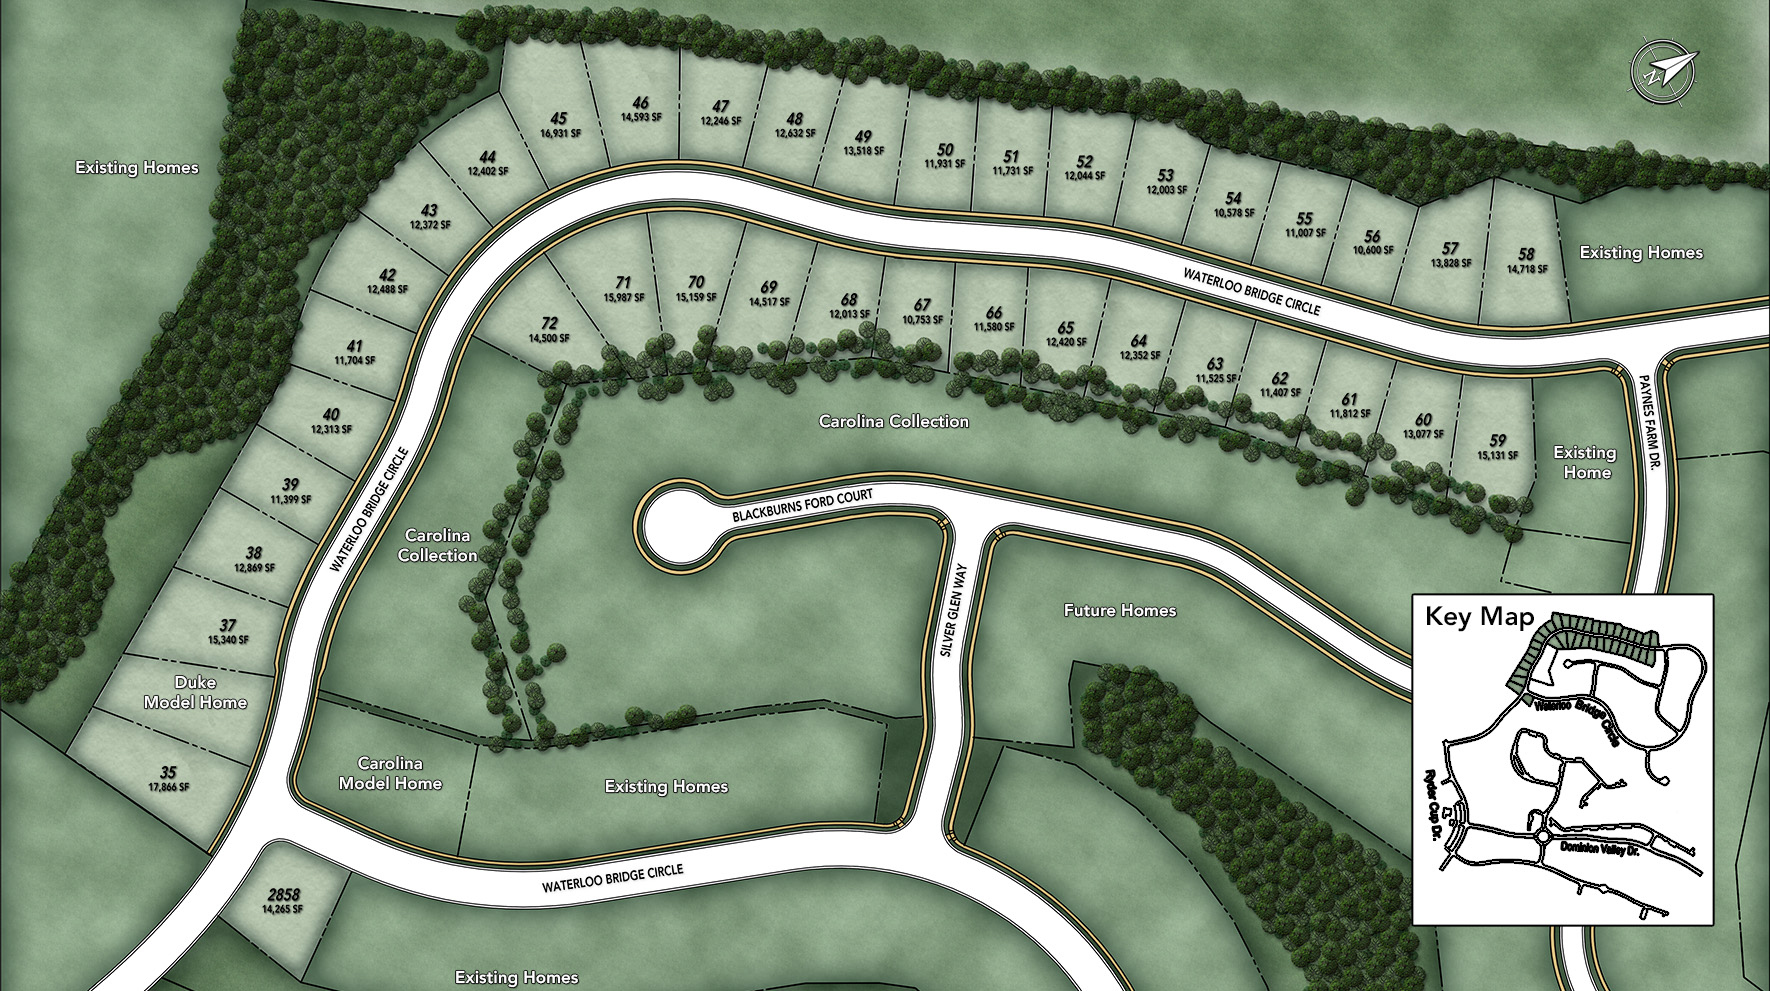 Dominion Valley Country Club - Executives Site Plan I